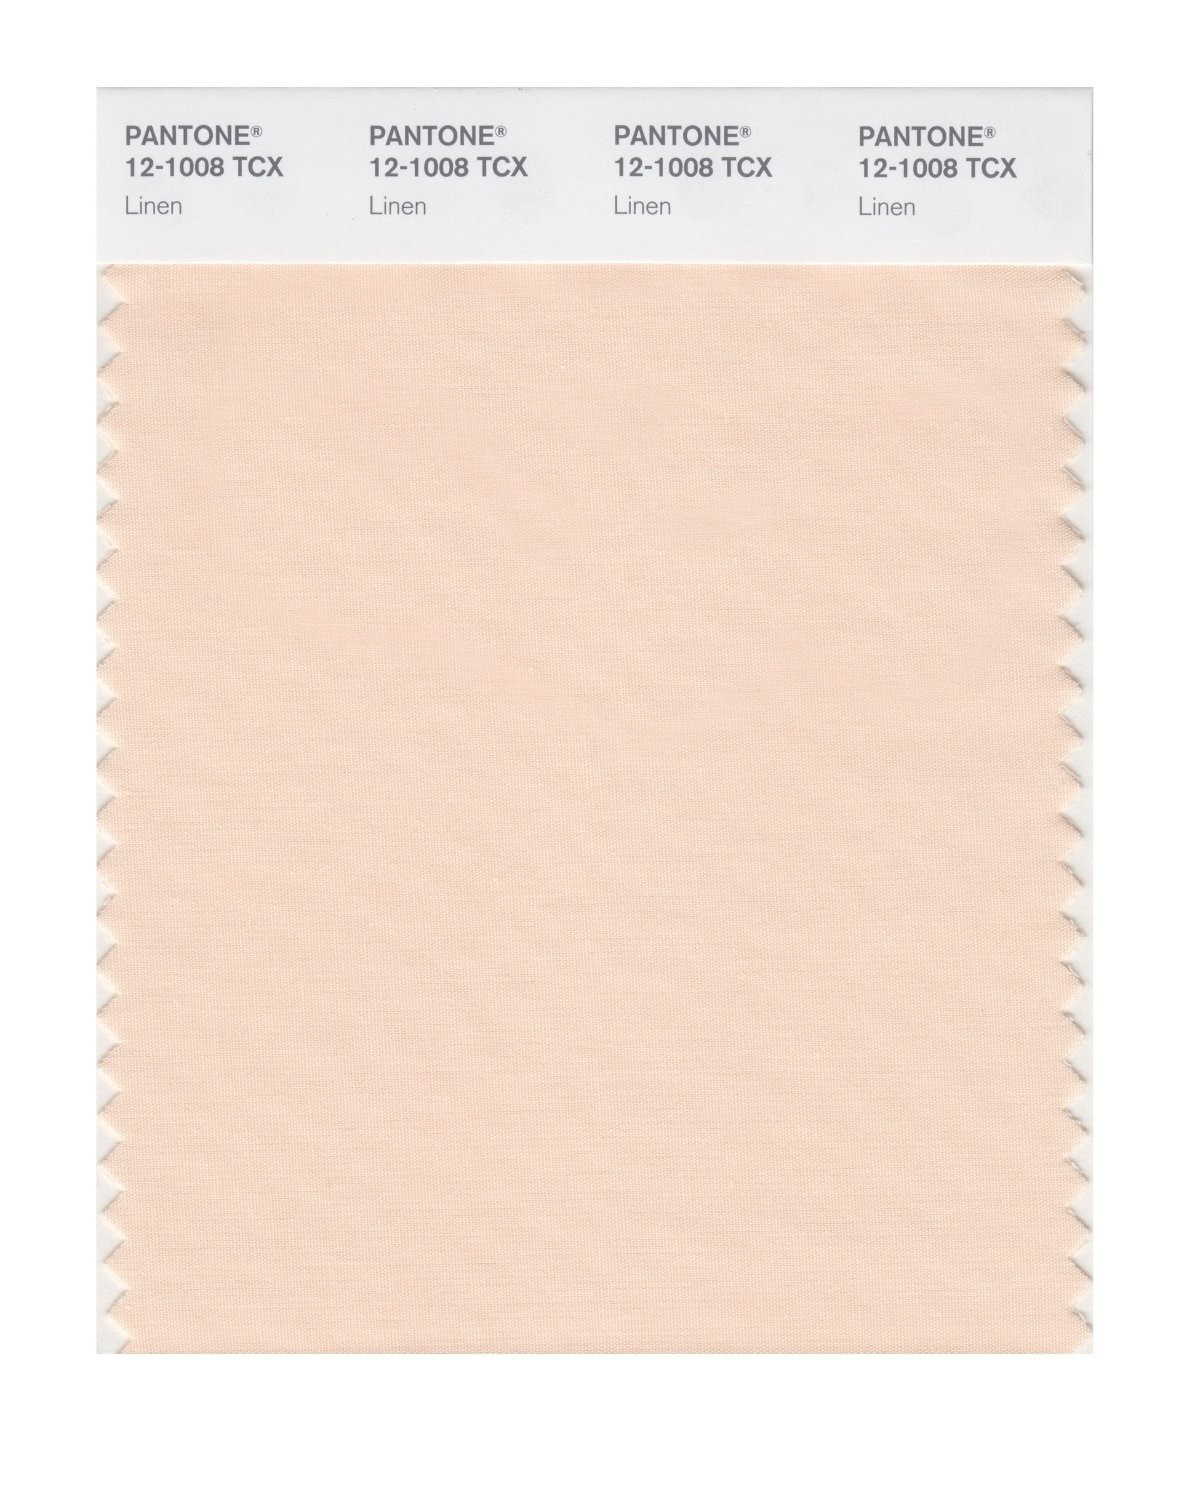 Buy custom pantone colour books charts in india design info pantone 12 0921 tcx swatch card golden straw geenschuldenfo Choice Image